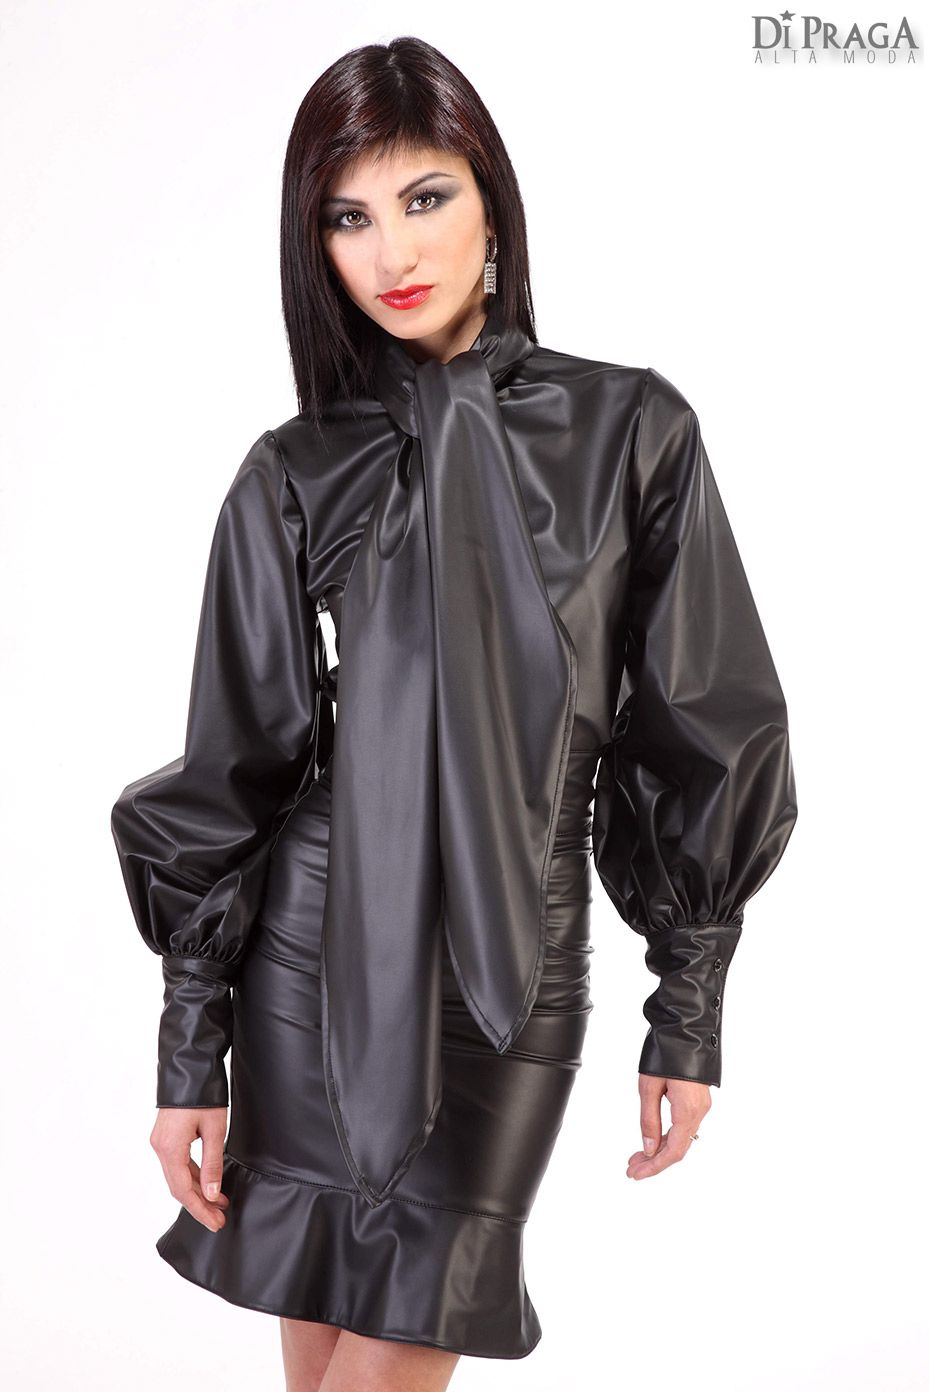 LL8 Leather Bow Blouse, Leather Skirt | LETHAL LEATHER ...